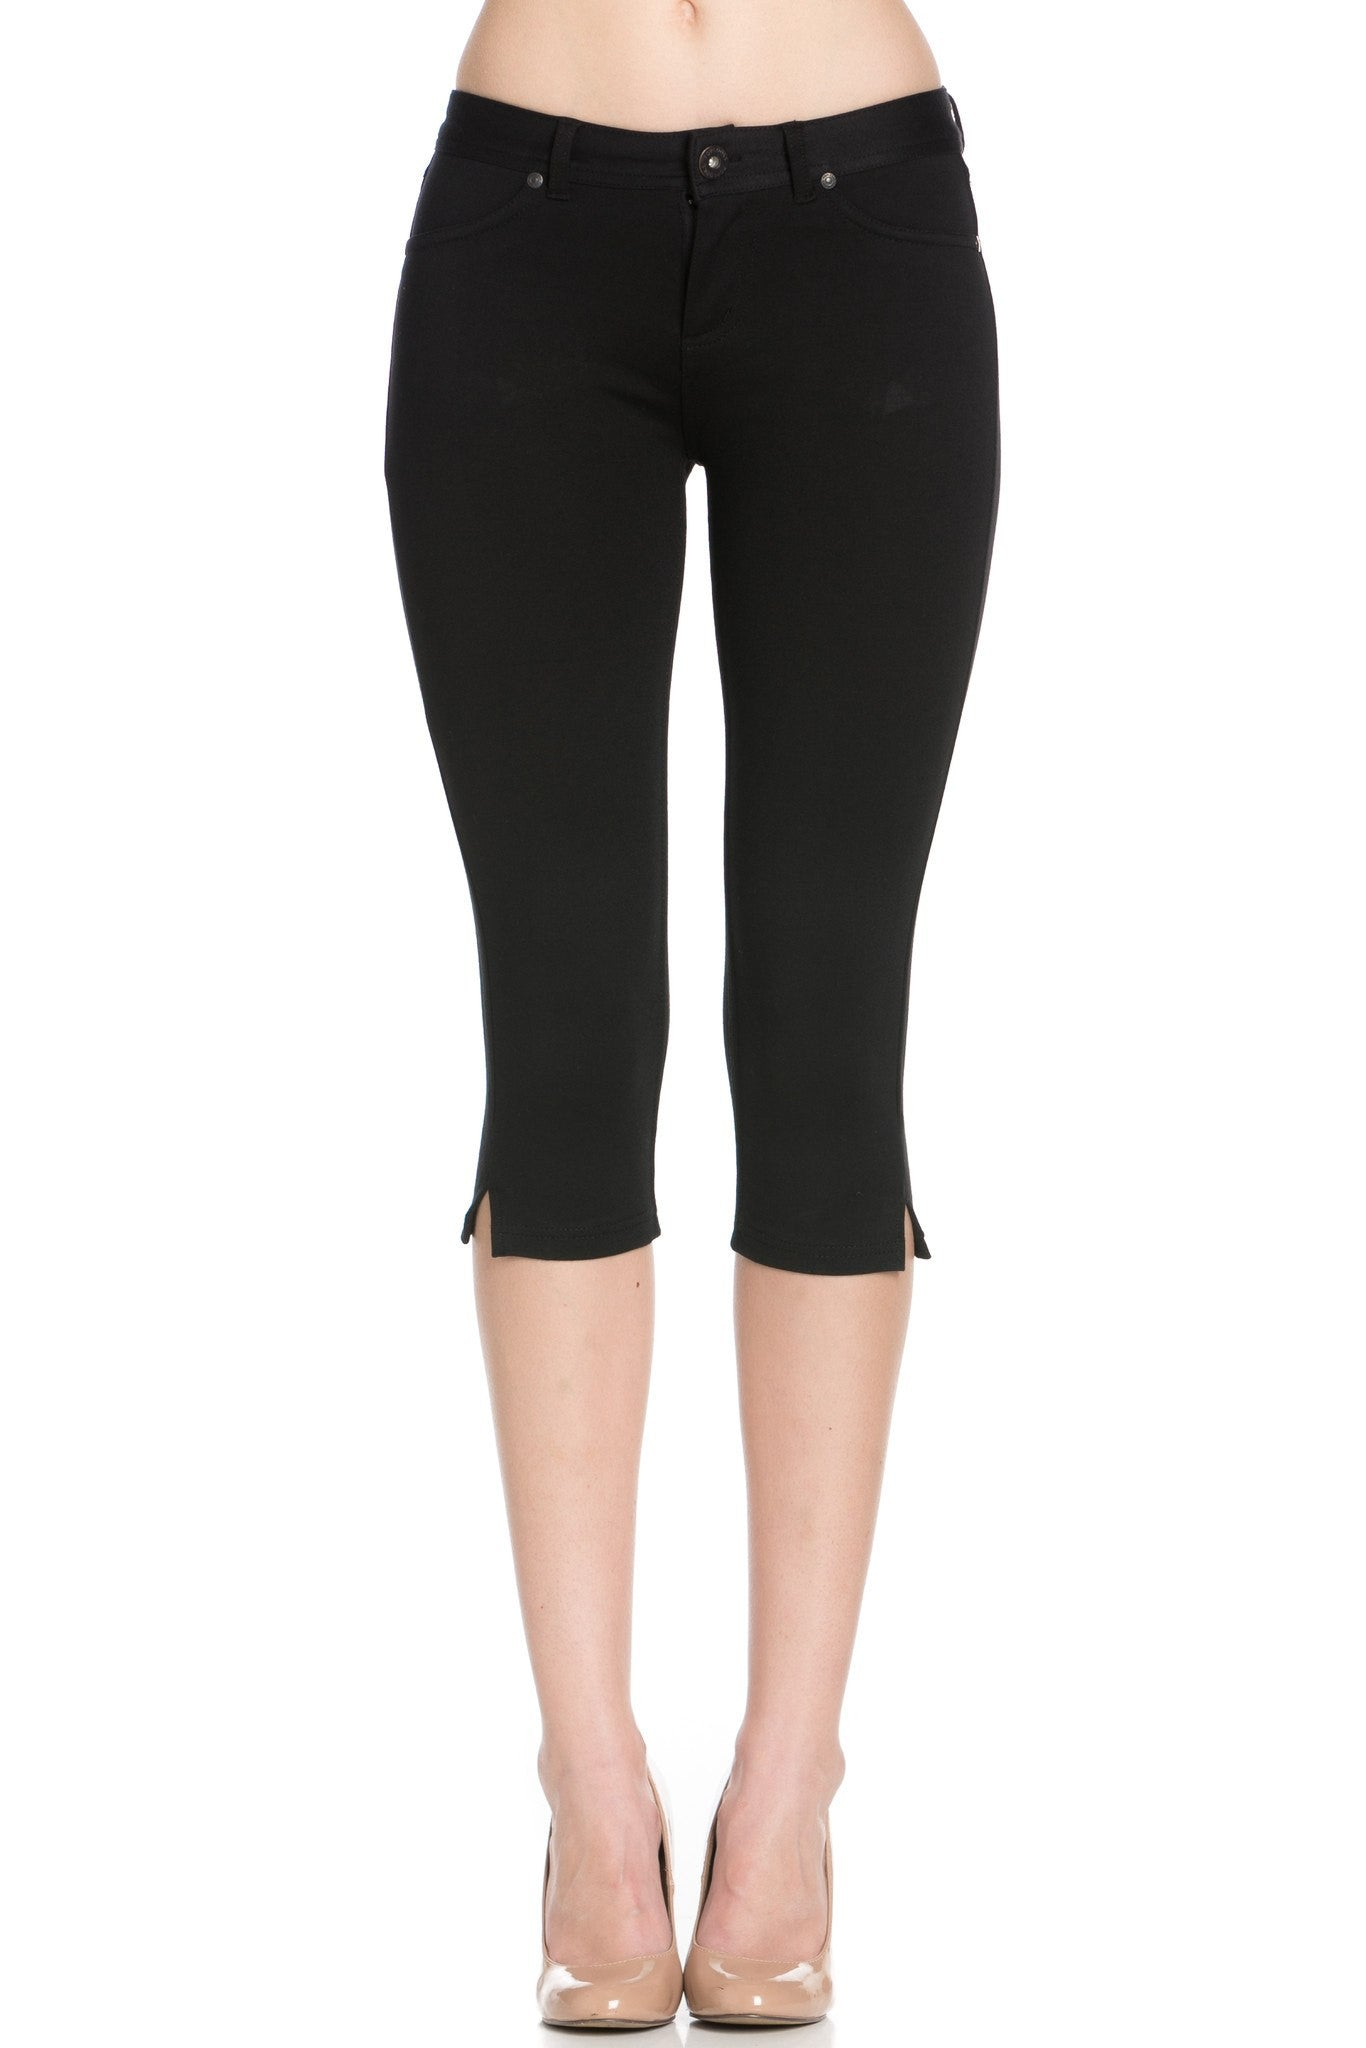 4 Way Stretchy Ponte Knit Capri Skinny Jeans (Black) - Poplooks